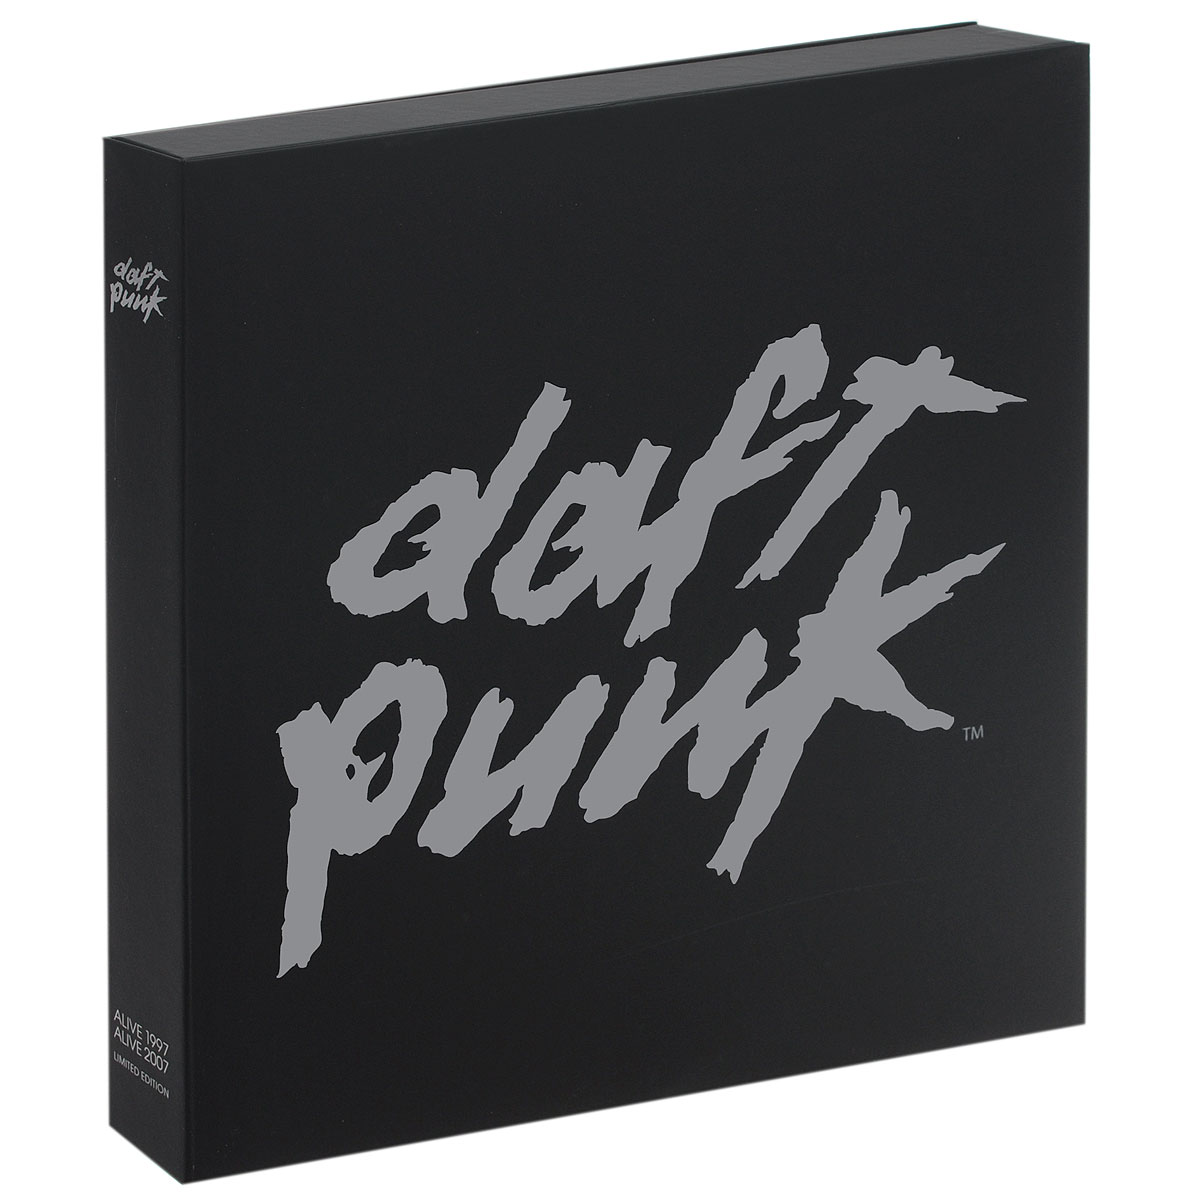 Содержание: LP 1: Daft Punk. Alive 2007 LP 1 - Side 1   01. Robot Rock / Oh Yeah02. Touch It / Technologic03. Television Rules The Nation / Crescendolls LP 1 - Side 2   01. Too Long / Steam Machine02. Around The World / Harder Better Faster Stronger03. Burnin' / Too LongLP 2: Daft Punk. Alive 2007 LP 2 - Side 1   01. Face To Face / Short Circuit02. One More Time / Aerodynamic03. Aerodynamic Beats / Gabrielle , Forget About The World LP 2 - Side 2   01. Prime Time Of Your Life / Brainwasher /Rollin 'and Scratchin' / Alive02. Da Funk / Dadftendirekt03. Superheroes / Human After All / Rock'n RollПластинки выполнены в белом цвете. LP 3: Daft Punk. Alive 1997 LP 3 - Side 1   01. WDPK (Part I) 02. Da Funk LP 3 - Side 2   01. Rollin' And Scratchin'02. WDPK (Part II) 03. AliveПластика выполнена в белом цвете. LP 3: Daft Punk. Alive 2007 BonusRecorded in 1997 in Birmingham during their first European tour, a few months after the release of 'Homework', this first live testimony was released in 2001.45 minutes of non-stop live mixing, featuring the band's first standard tracks (Da Funk, Rollin' & Scratchin'...) along with those techno-electronic explosions unique to Daft Punk IПластика выполнена в сером цвете.